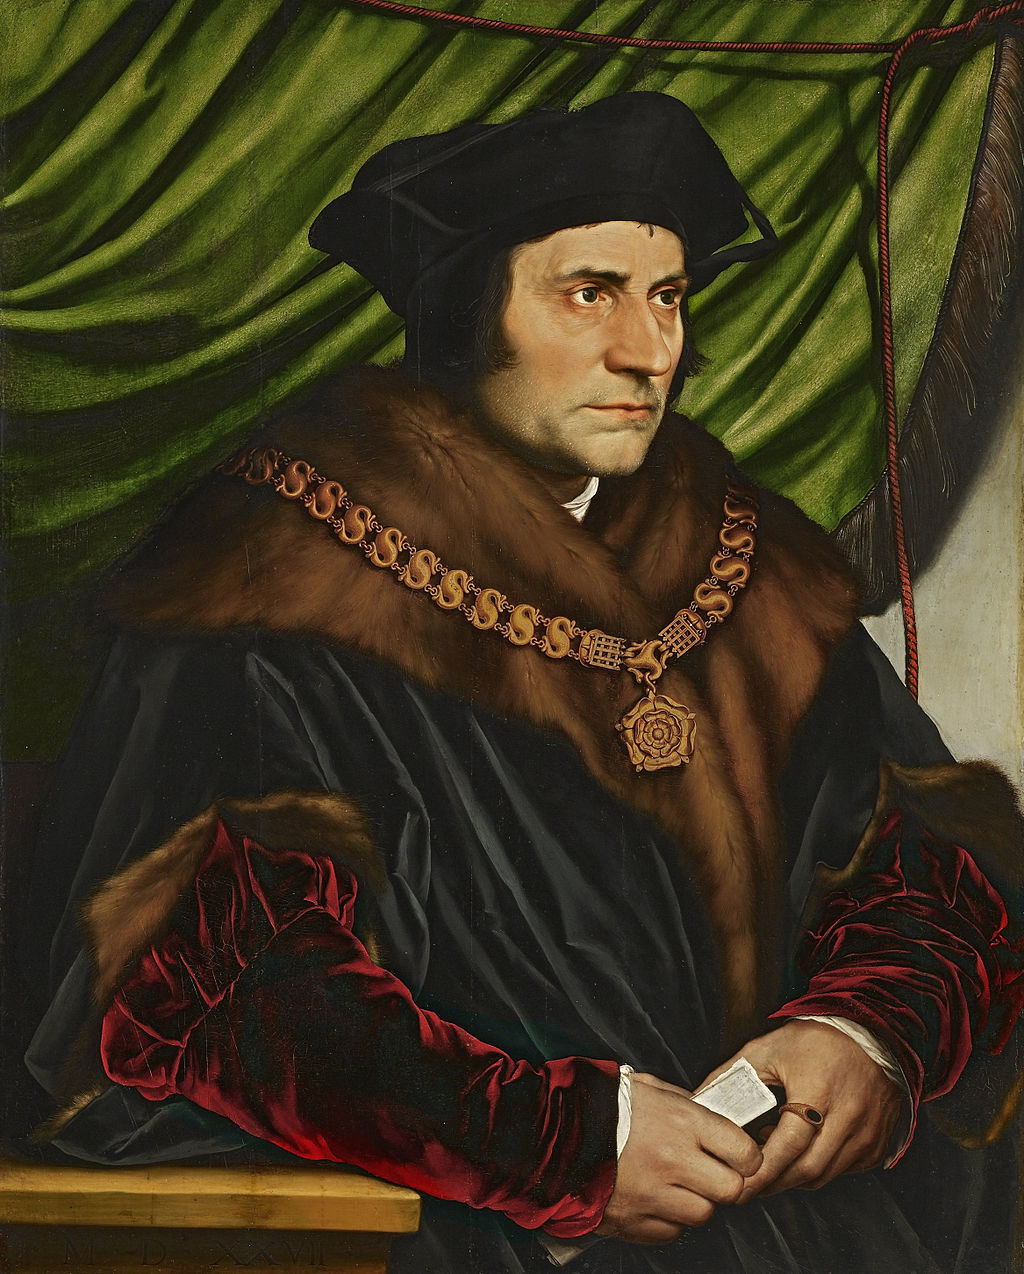 1024px-Hans_Holbein,_the_Younger_-_Sir_Thomas_More_-_Google_Art_Project